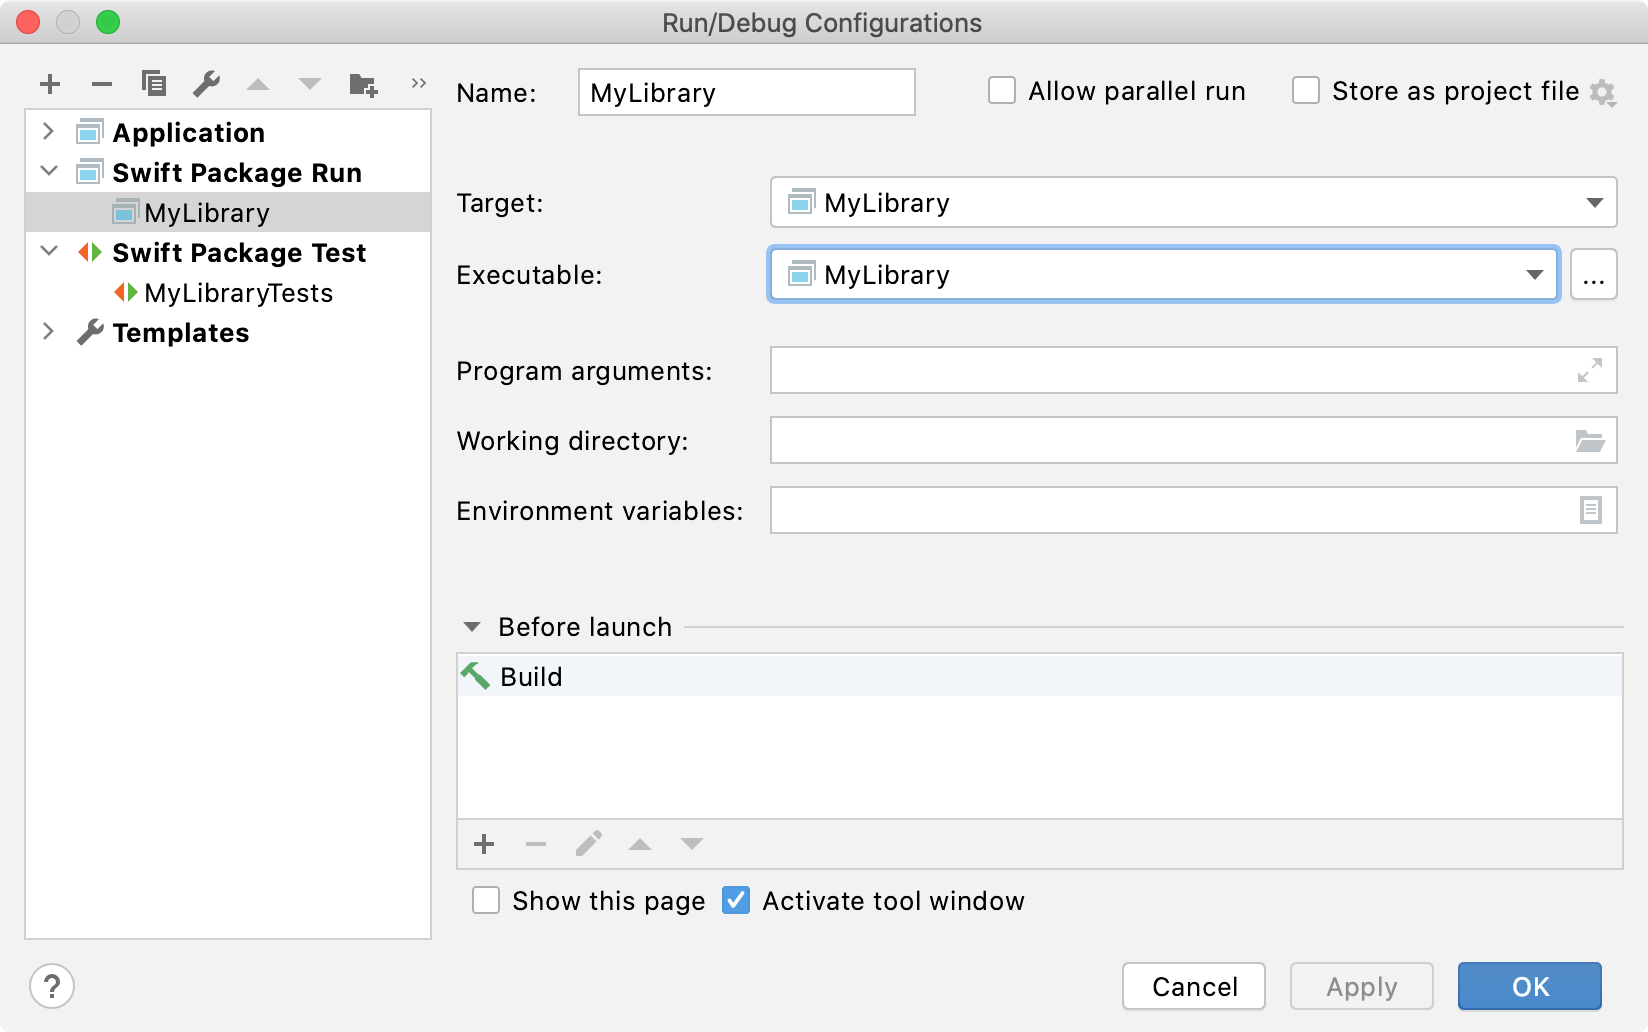 Swift Packages run/debug configurations